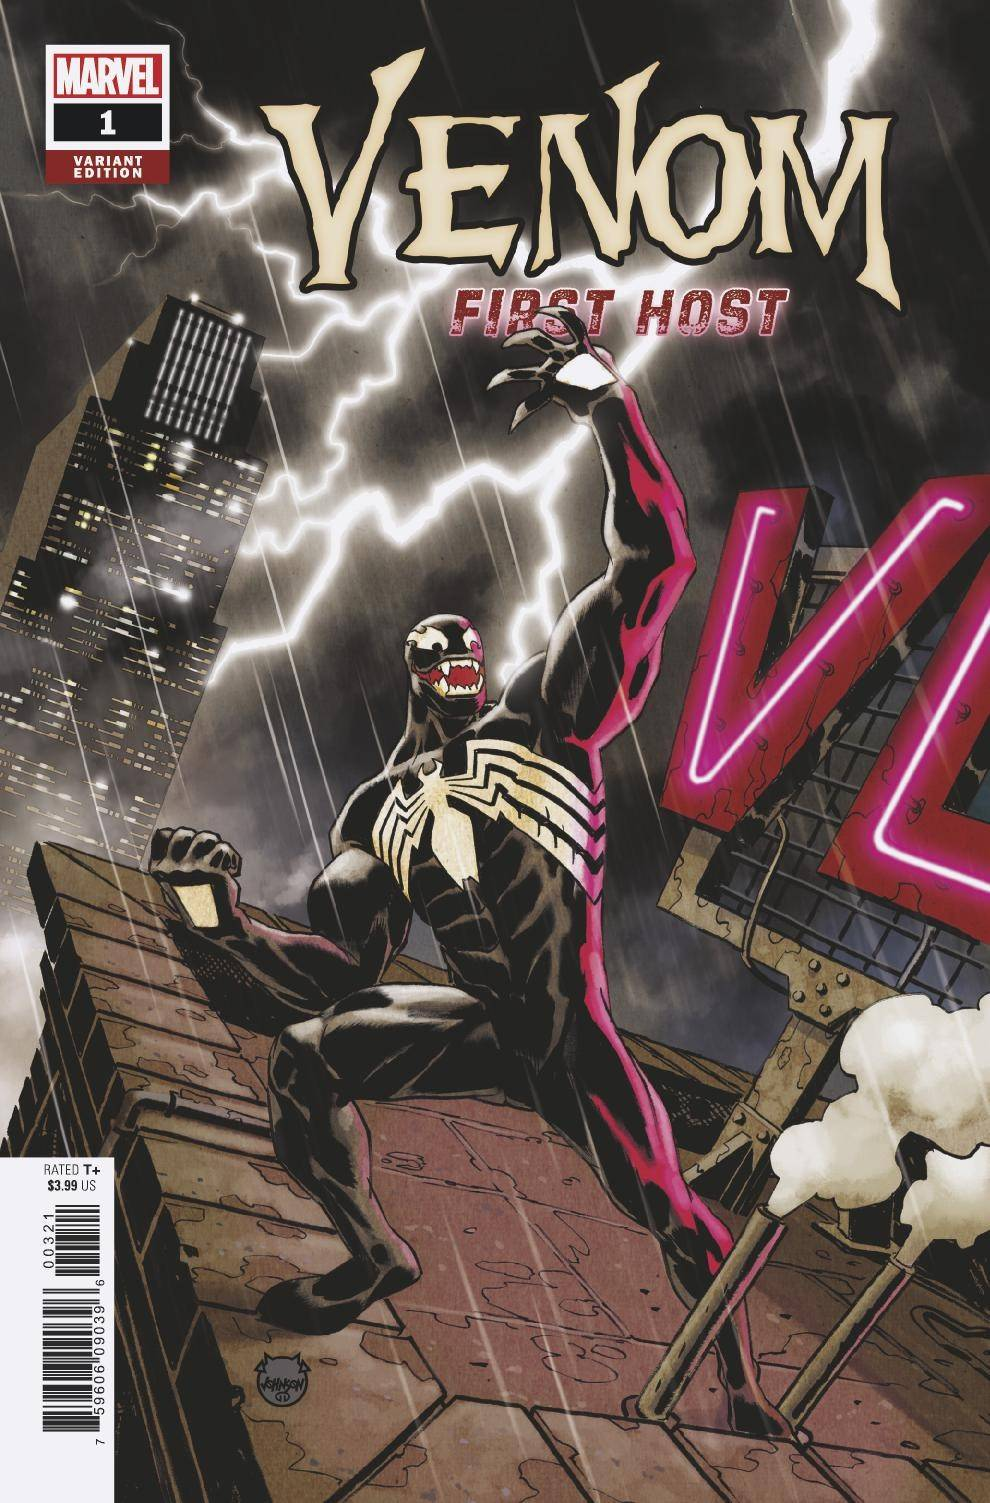 VENOM FIRST HOST #3 (OF 5) JOHNSON VARIANT FOC 08/20